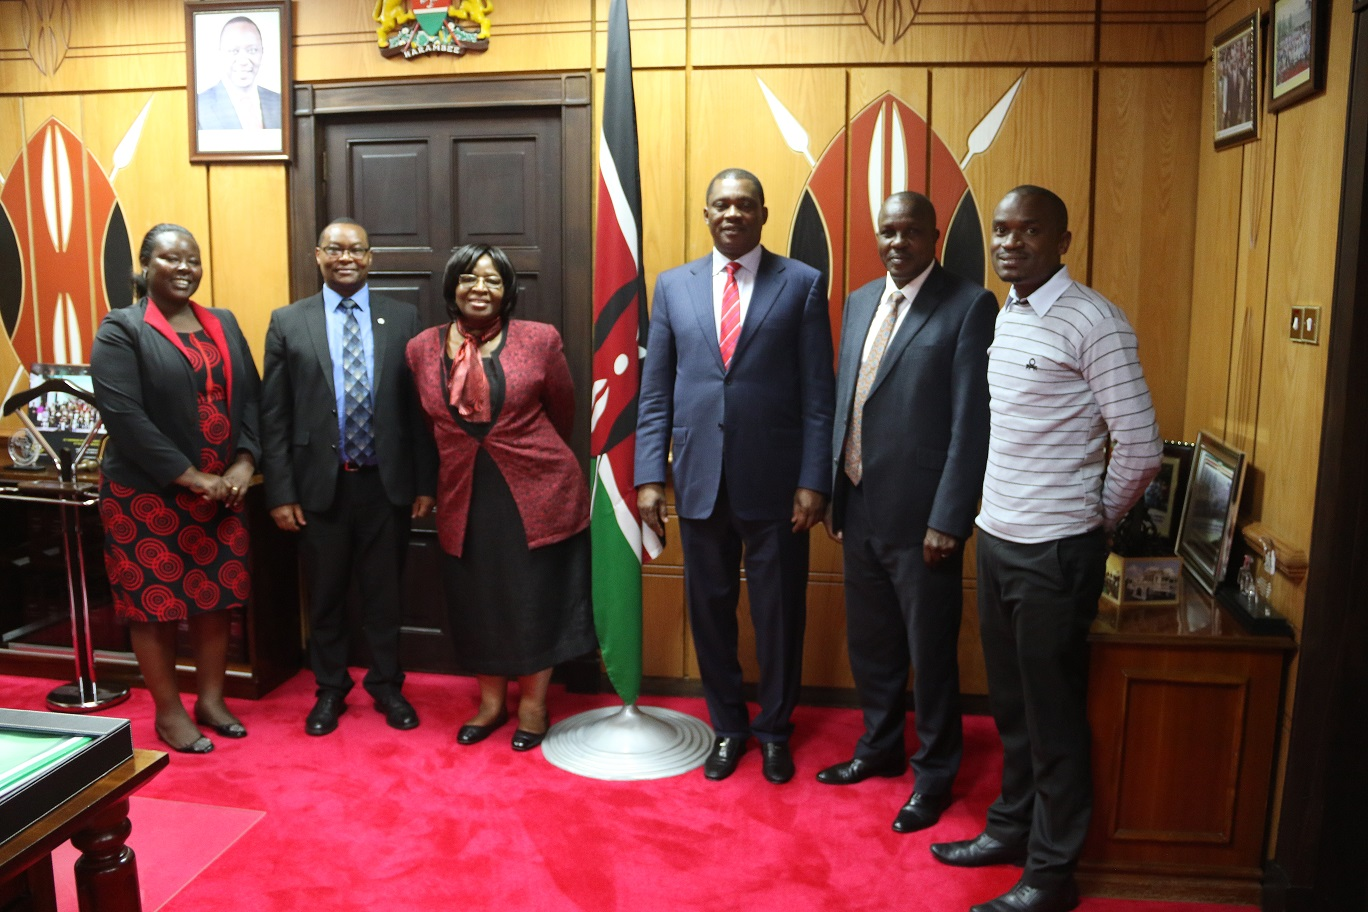 Allocation of More Resources to the Auditor General's Office, key to success in the Fight against Graft- Speaker Muturi